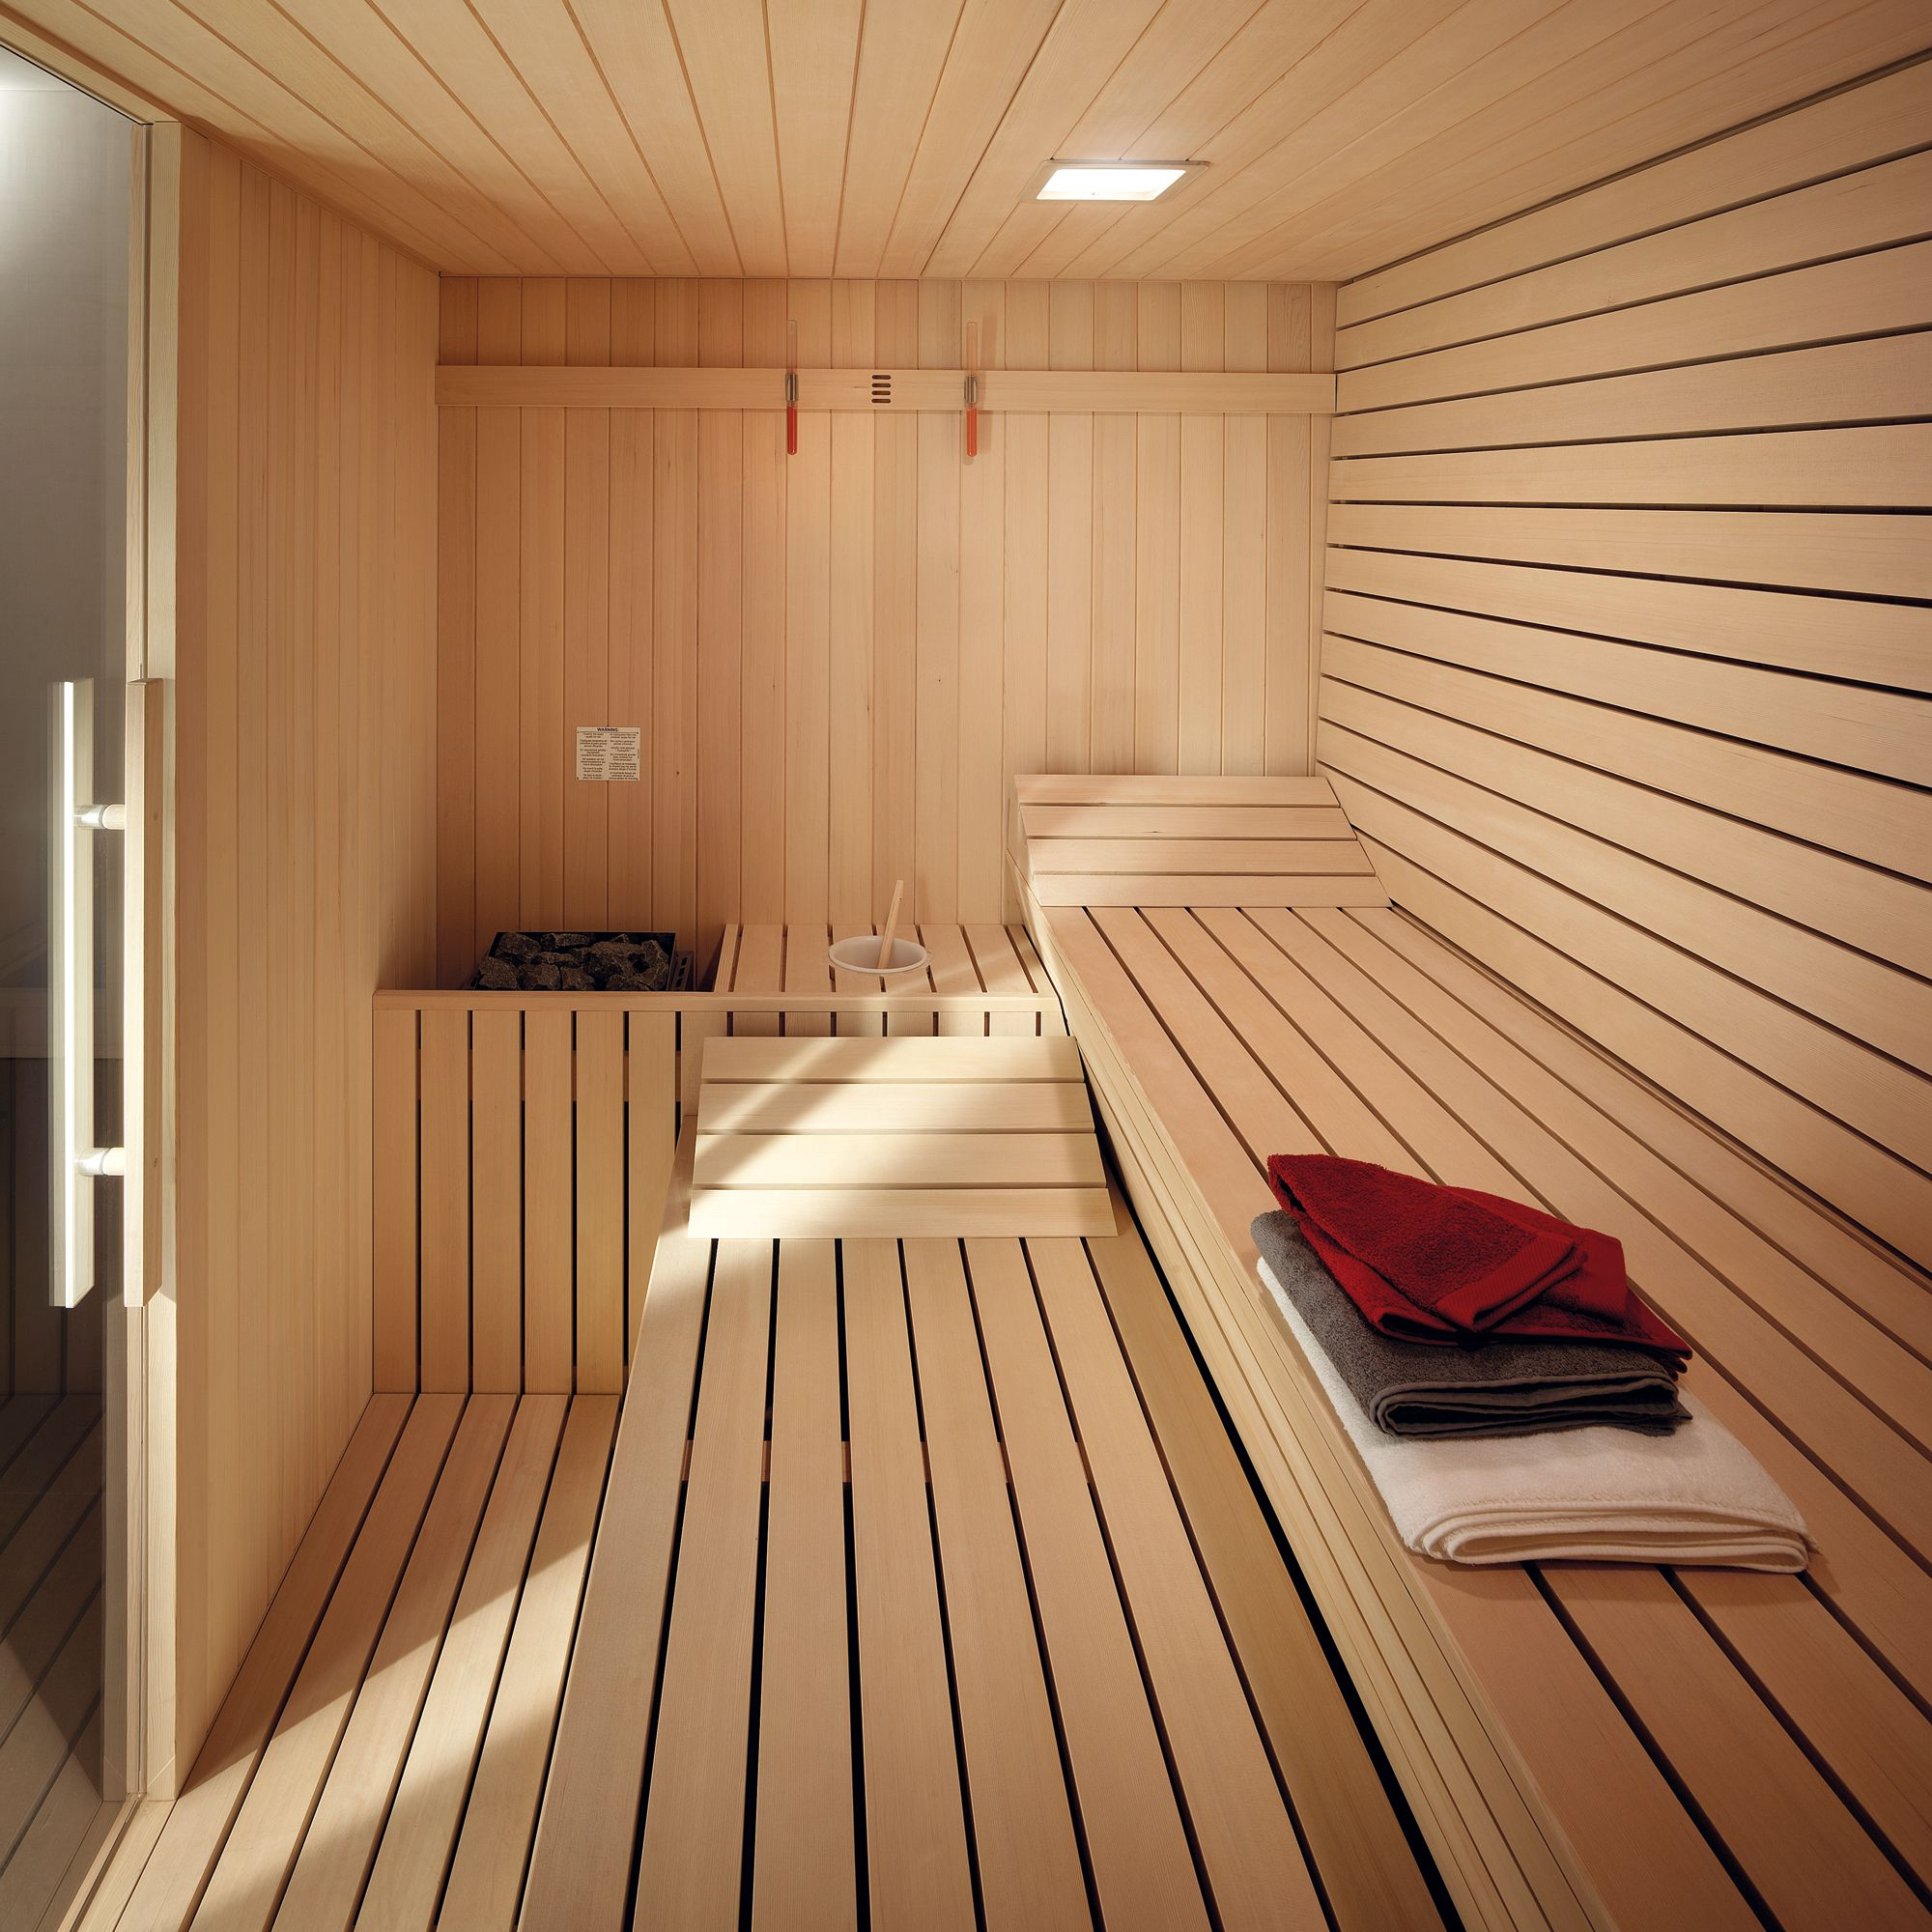 sauna gym effegibi saunas pinterest sauna selbst bauen badezimmer und strandh user. Black Bedroom Furniture Sets. Home Design Ideas